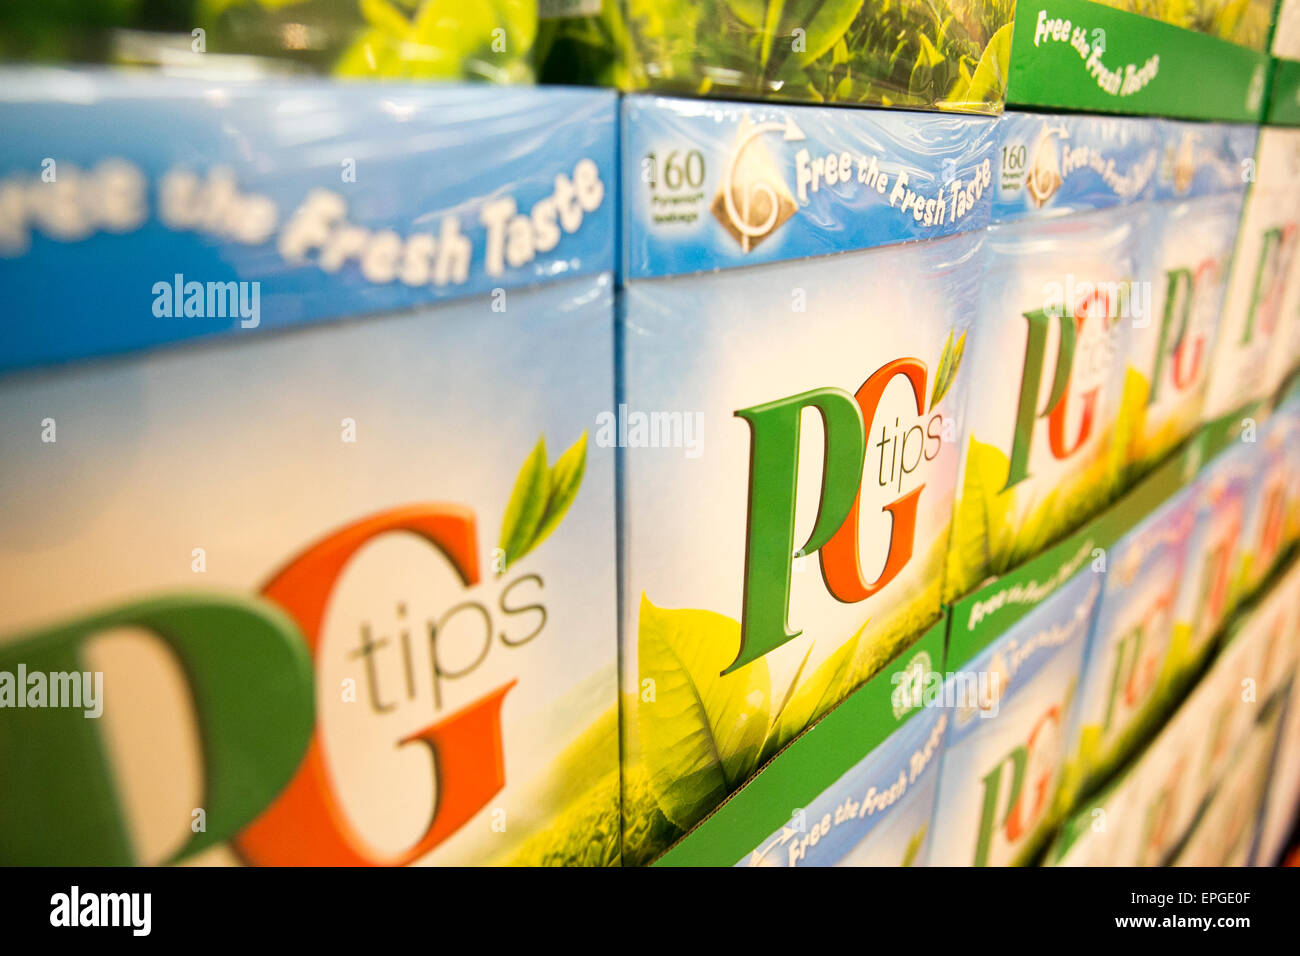 Boxes of PG Tips tea bags in a supermarket - Stock Image